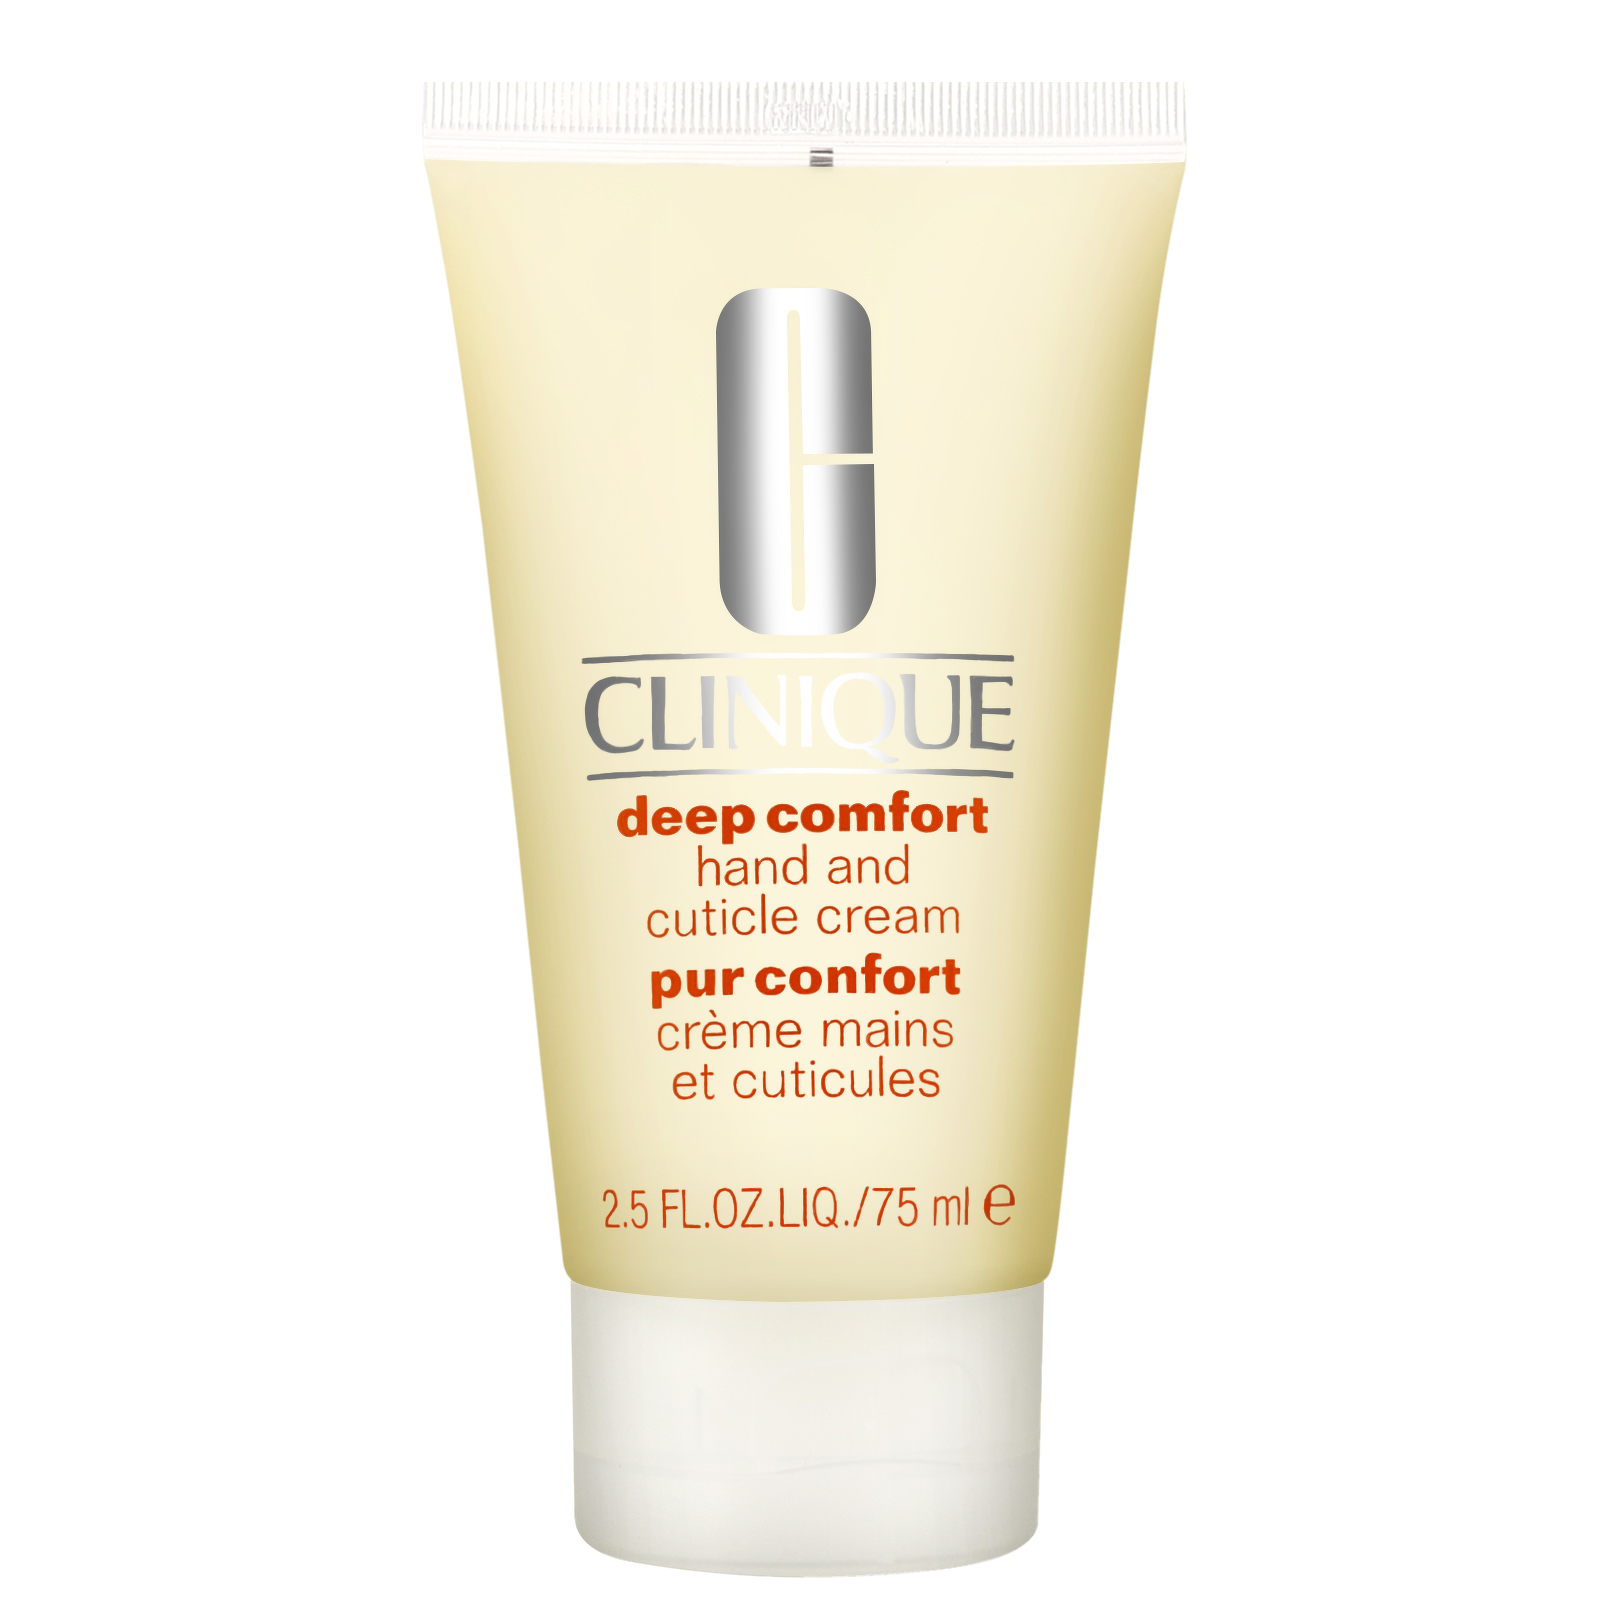 Clinique Hand & Body Care Deep Comfort Hand and Cuticle Cream 75ml / 2.5 fl.oz.